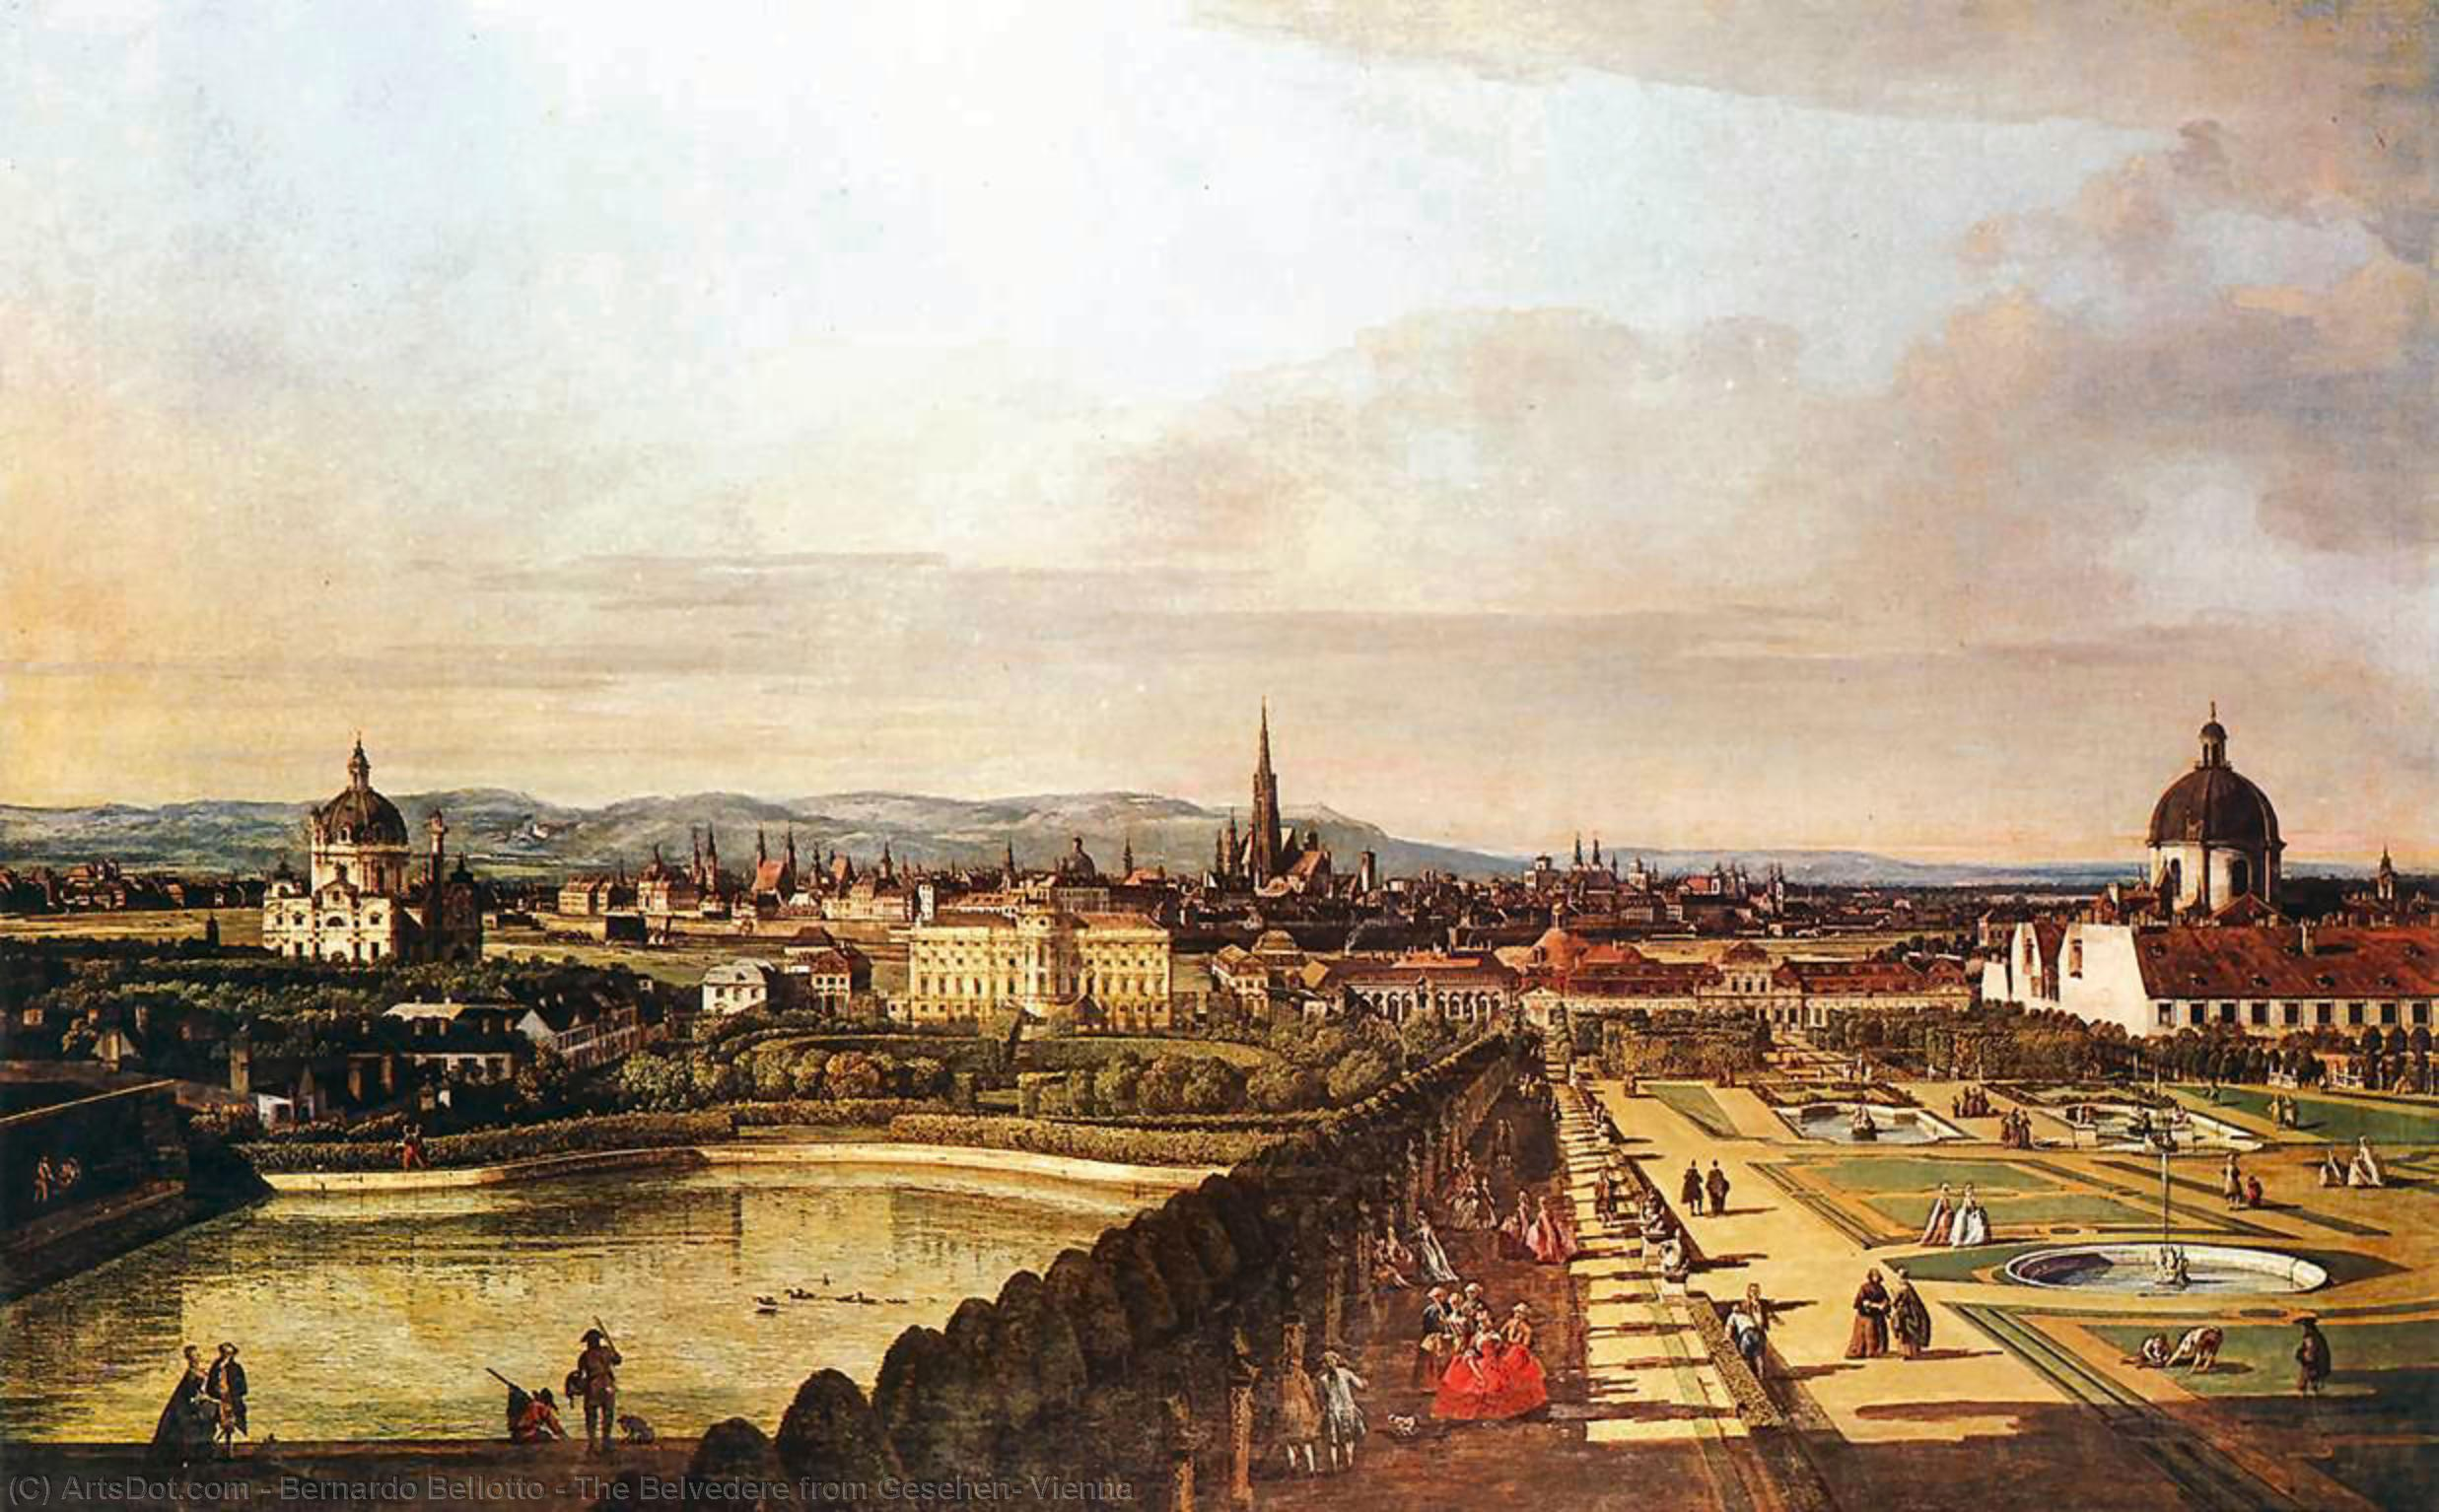 Wikioo.org - The Encyclopedia of Fine Arts - Painting, Artwork by Bernardo Bellotto - The Belvedere from Gesehen, Vienna